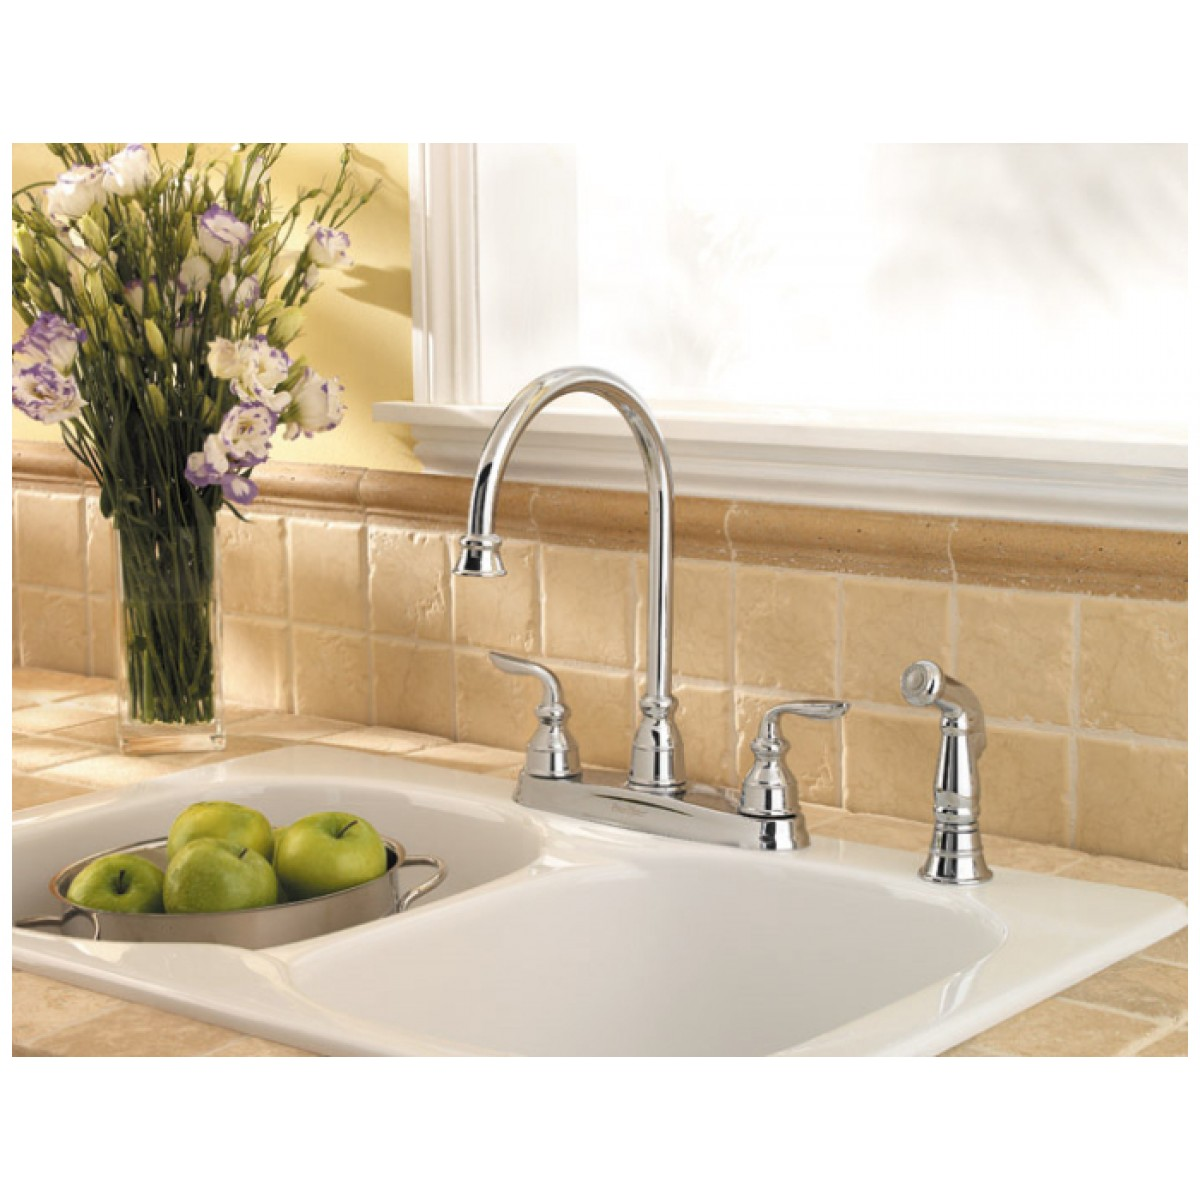 Pfister Avalon Two Handle Widespread Lead Free Kitchen Faucet With ...